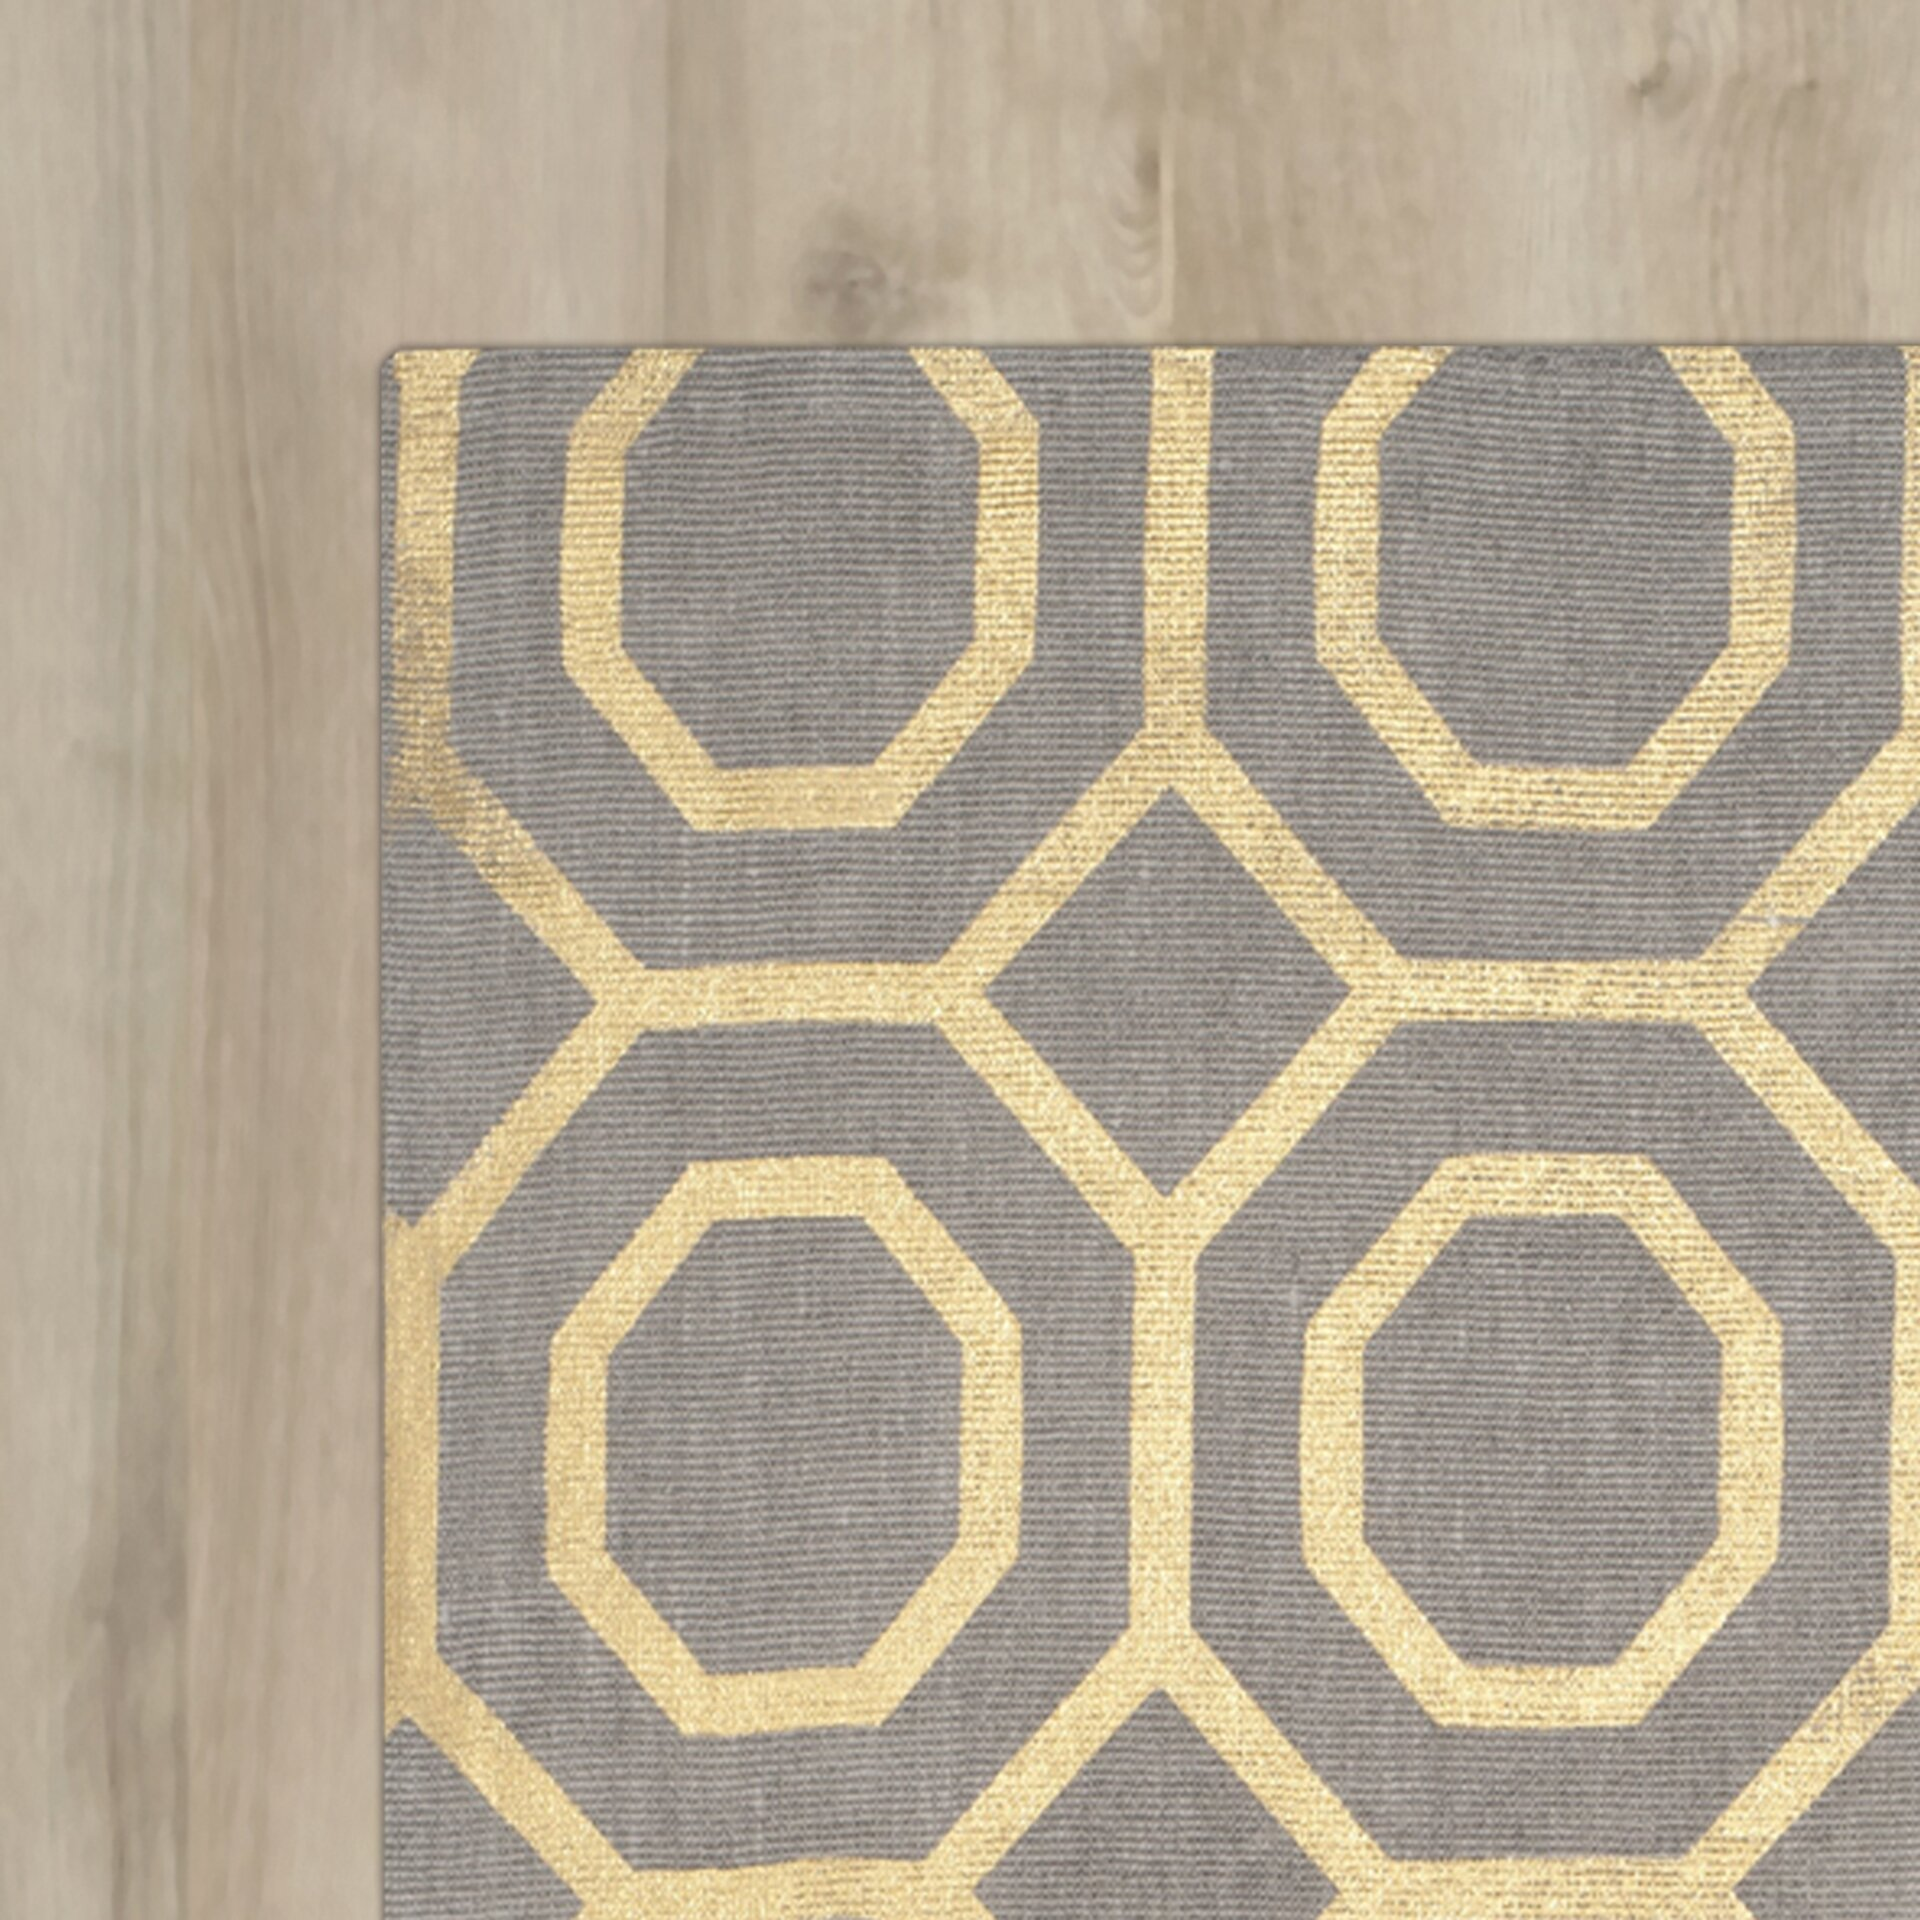 Outdoor halloween decorations for trees - Columbus Circle Hand Loomed Grey Gold Area Rug By Varick Gallery